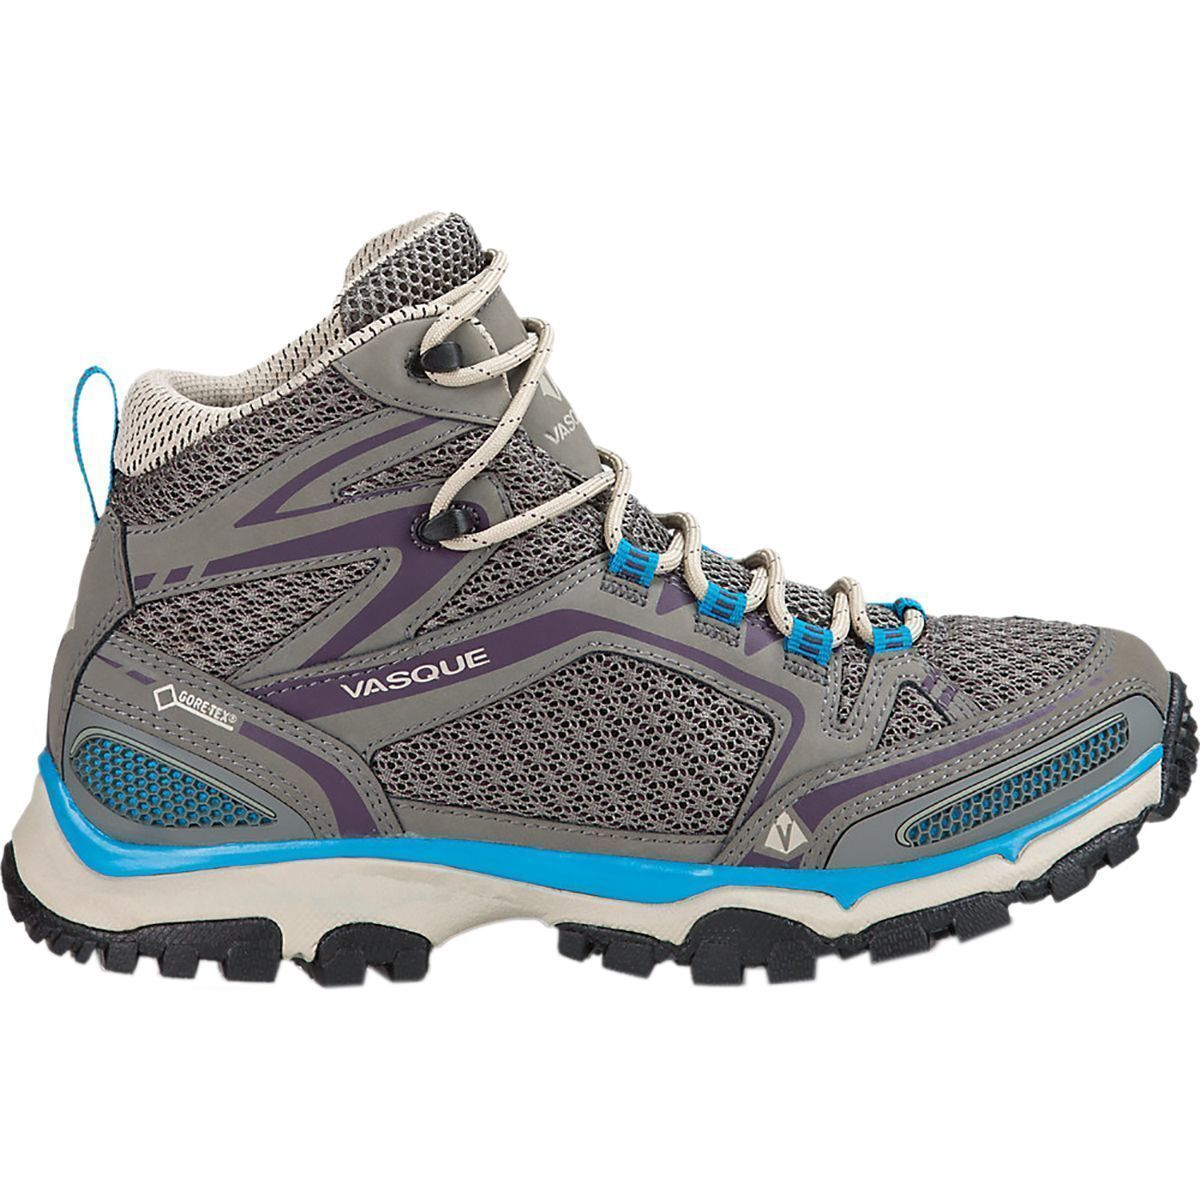 40%  OFF  NEW WMN'S VASQUE INHALER II II II GORE-TEX HIKING Stiefel, US 8, MOON MIST. 82b15e